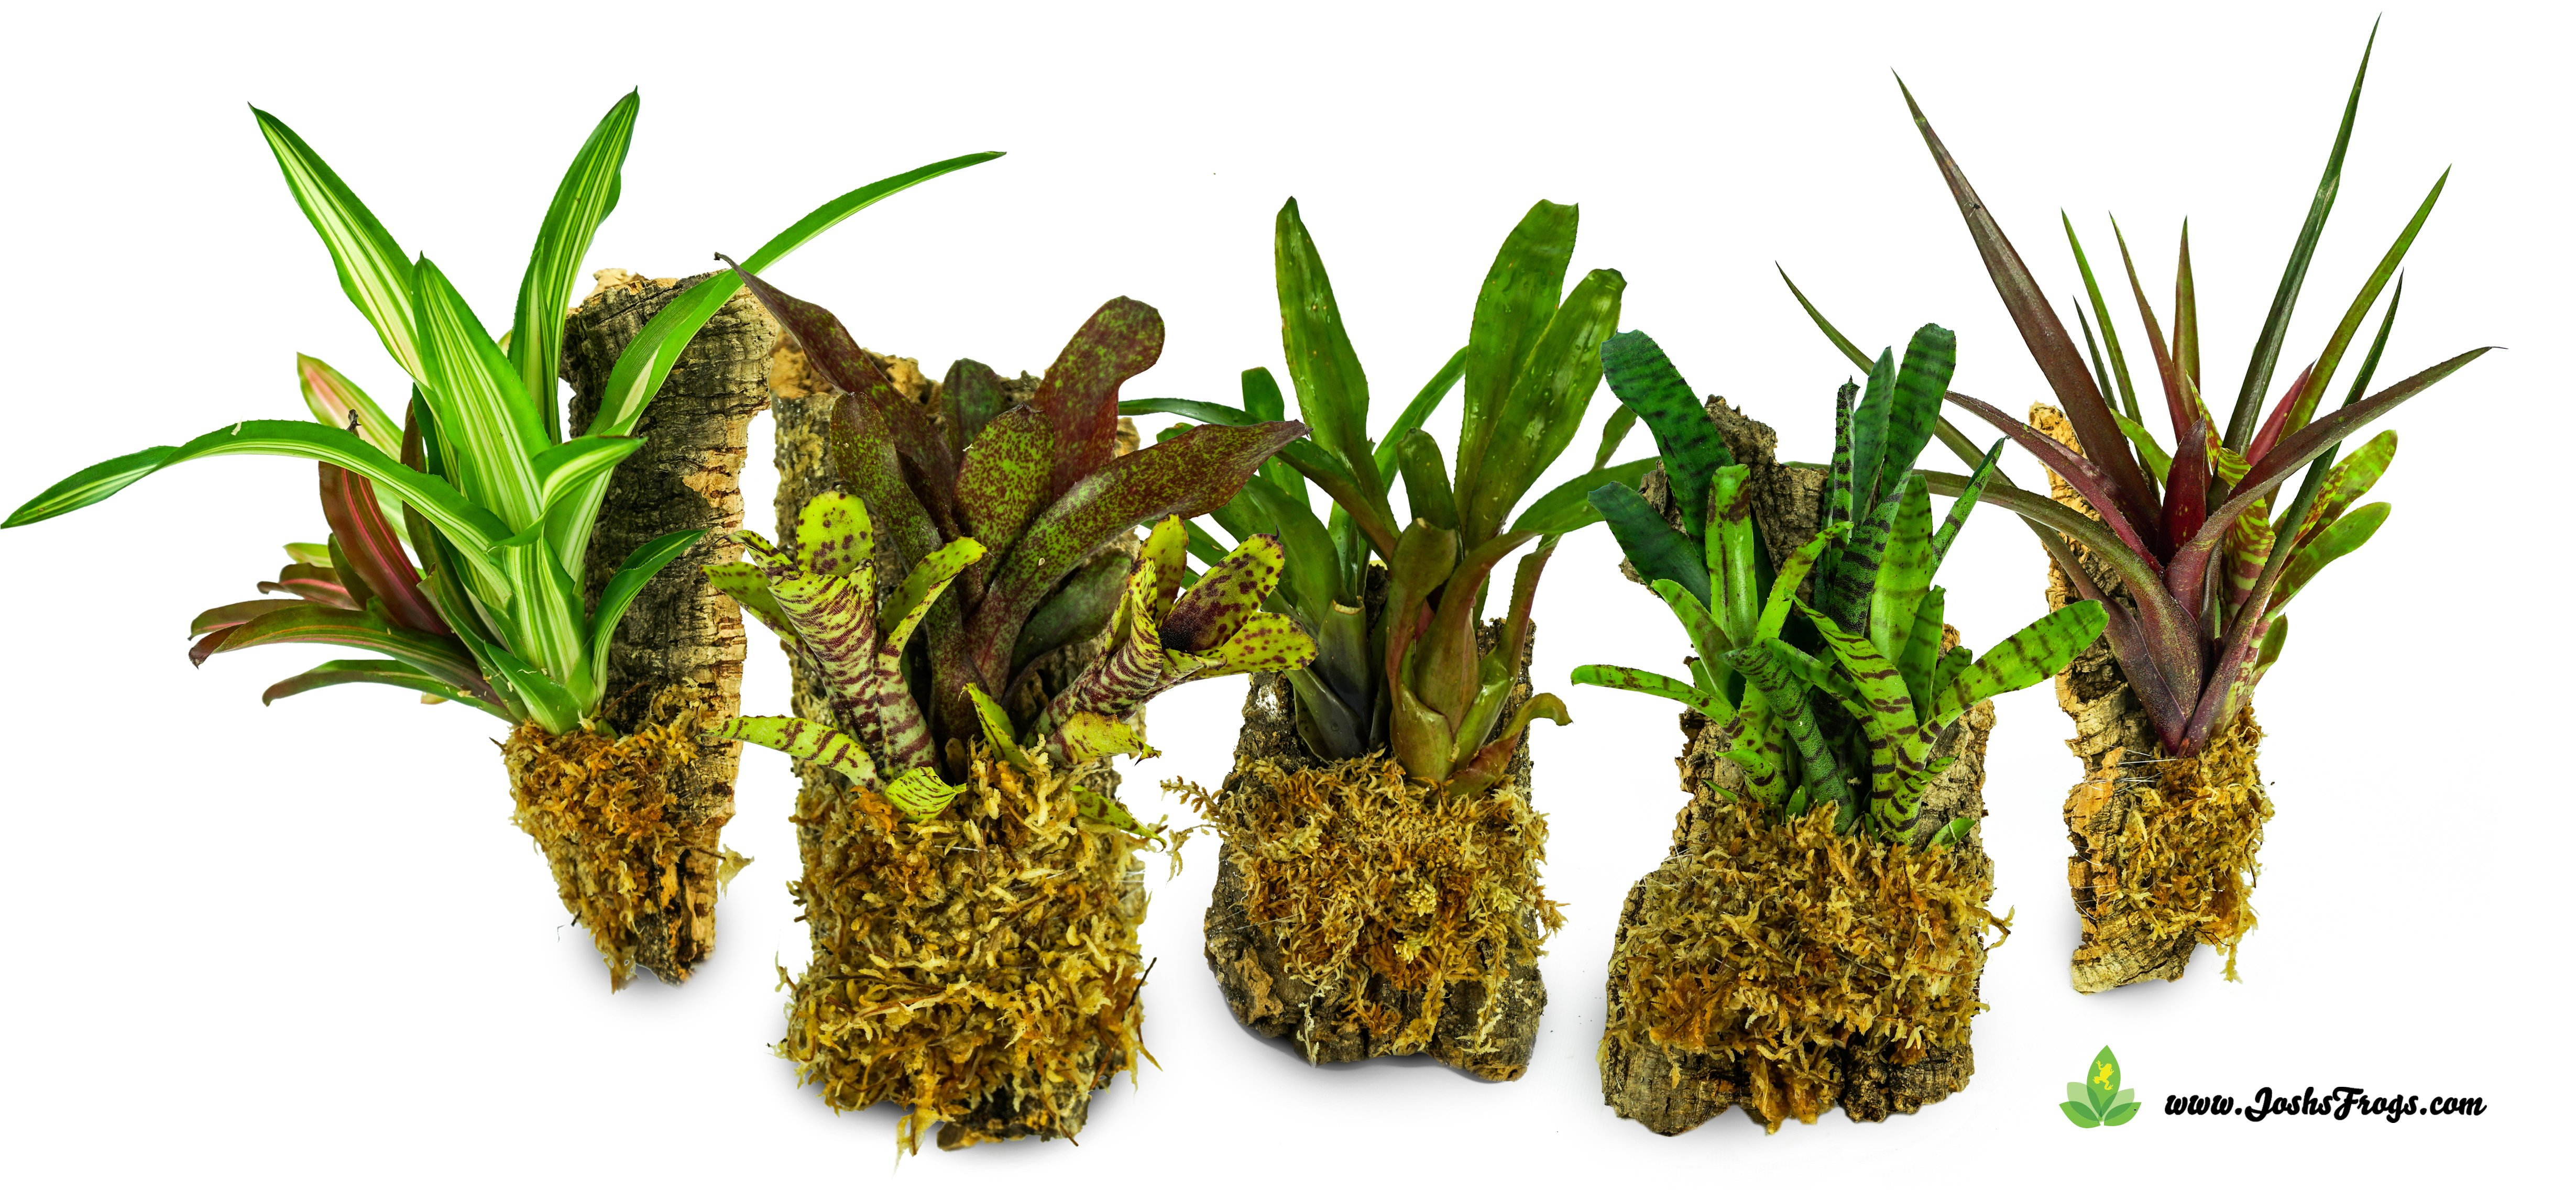 Bromeliads Houseplants Terrarium Plants Gardening And Decor